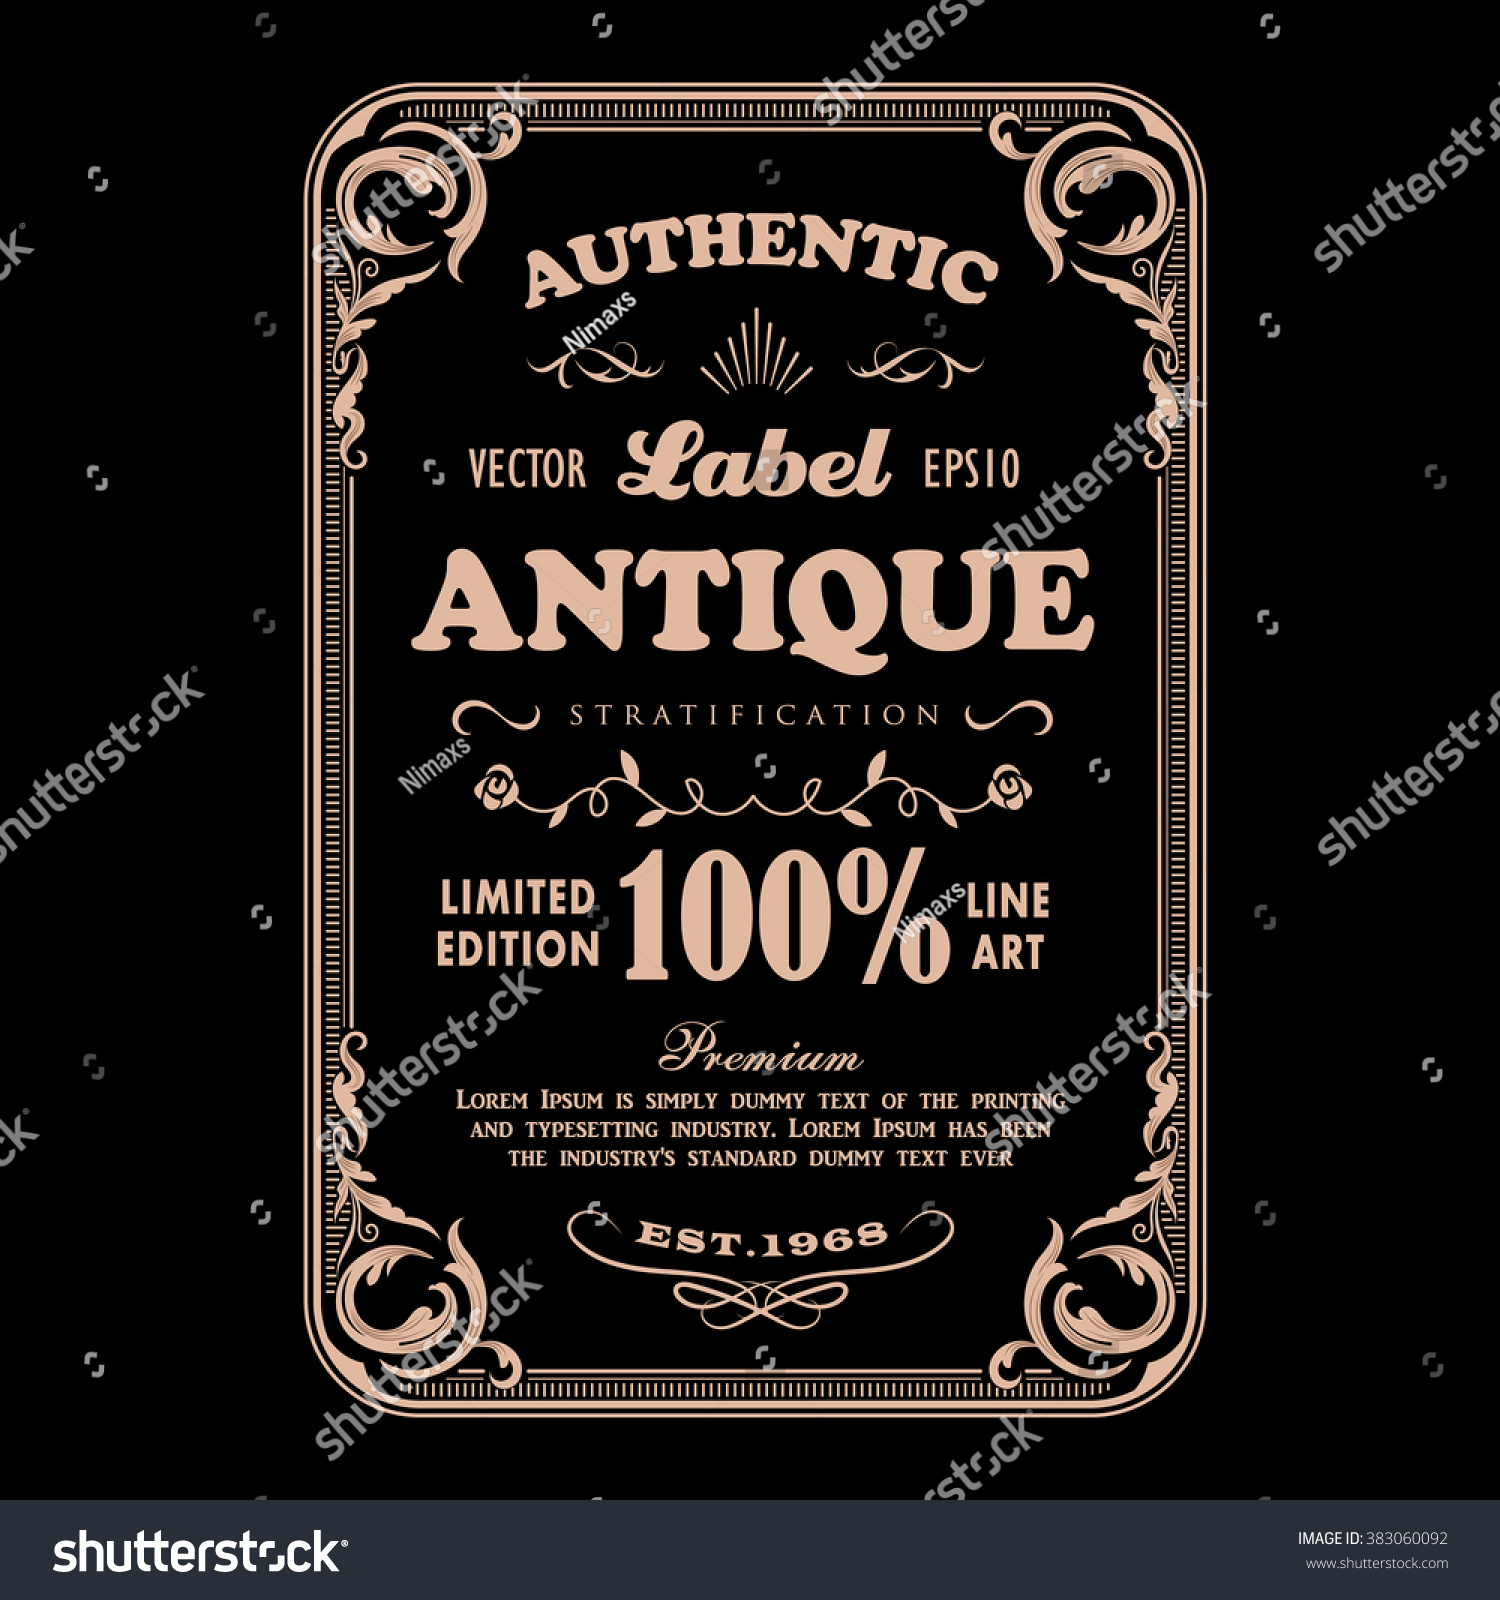 Original Whiskey Poster With Label Font In Vintage Style On Black